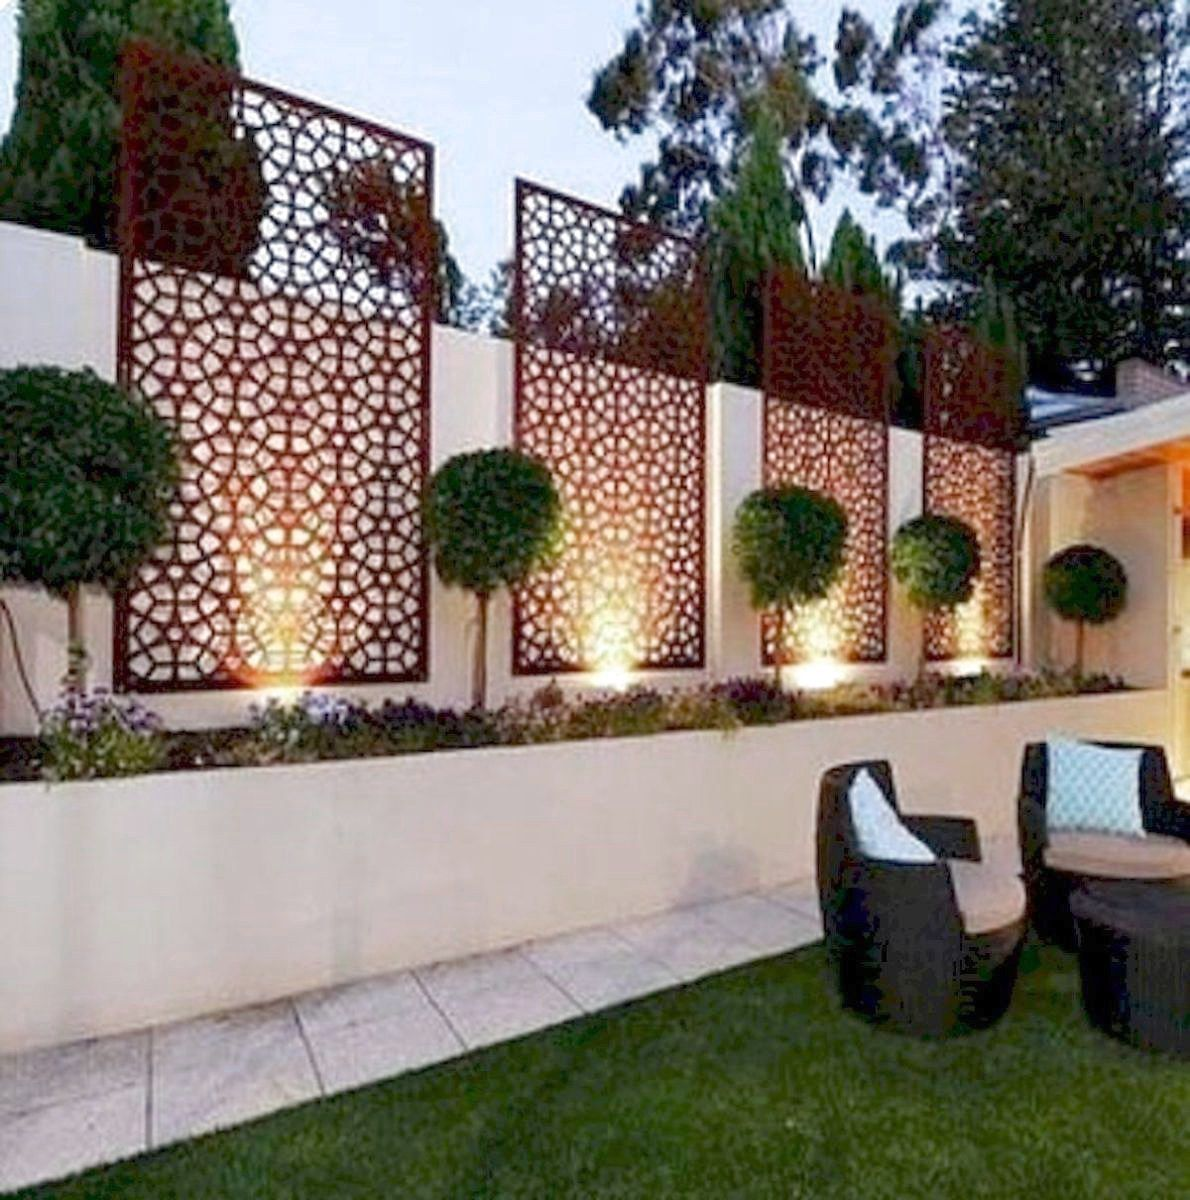 36 Amazing Small Garden Design Ideas Low Maintenance #SmallGardenDesign #GardenLowMaintenance #smallgardendesign